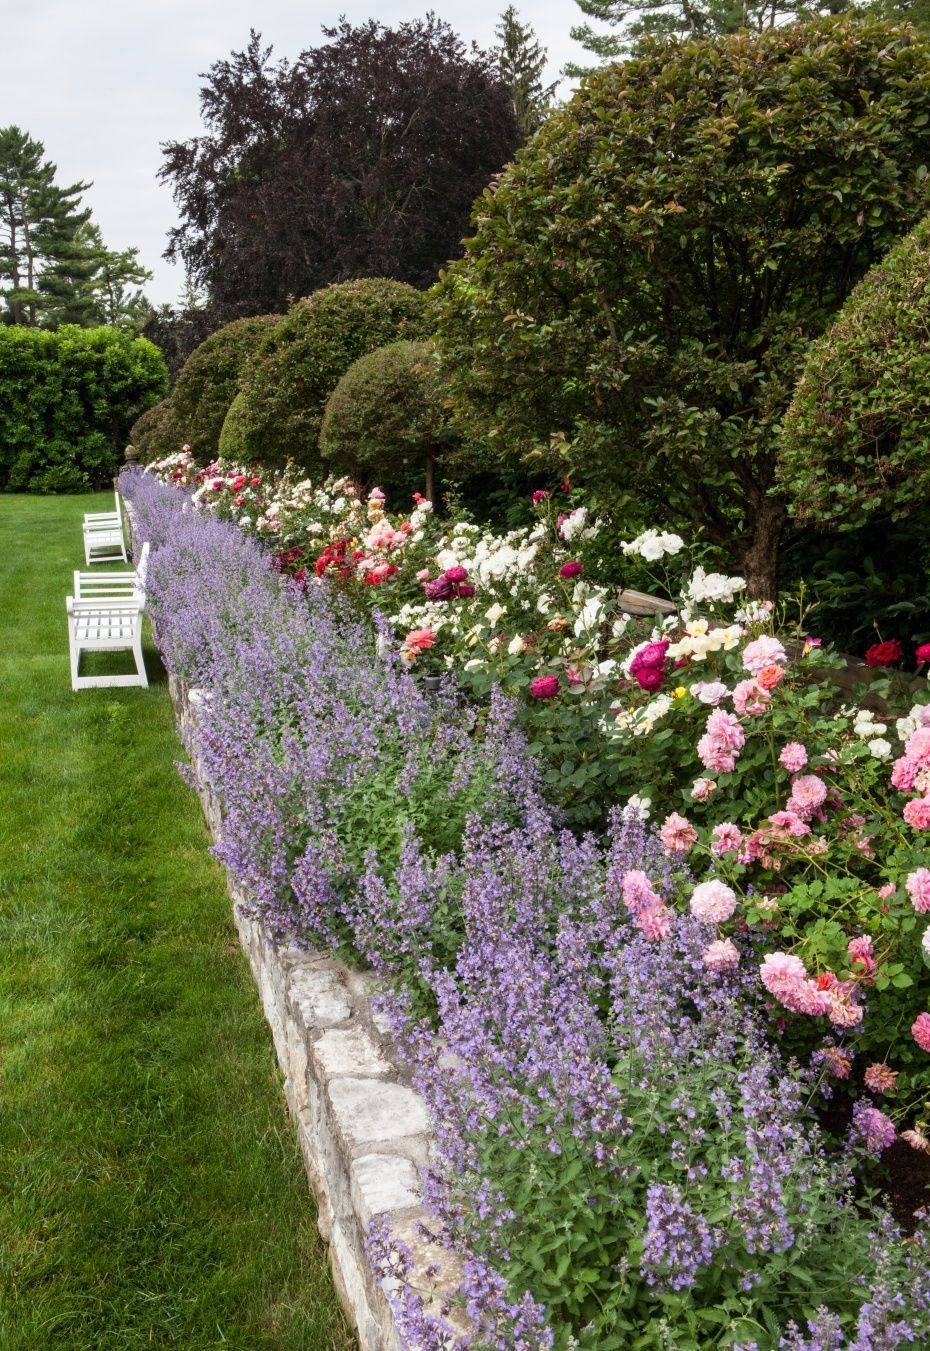 25+ Rose Garden Design Ideas | Rose garden design, Magnolia trees ...